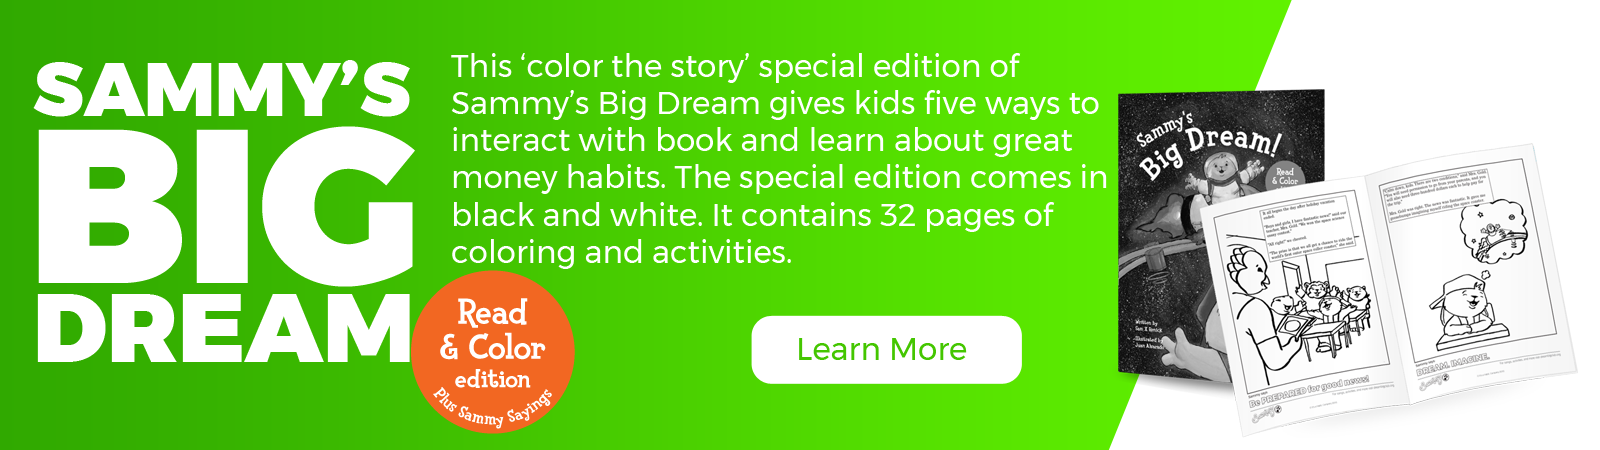 Sammy's Big Dream Read & Color Edition - Learn more